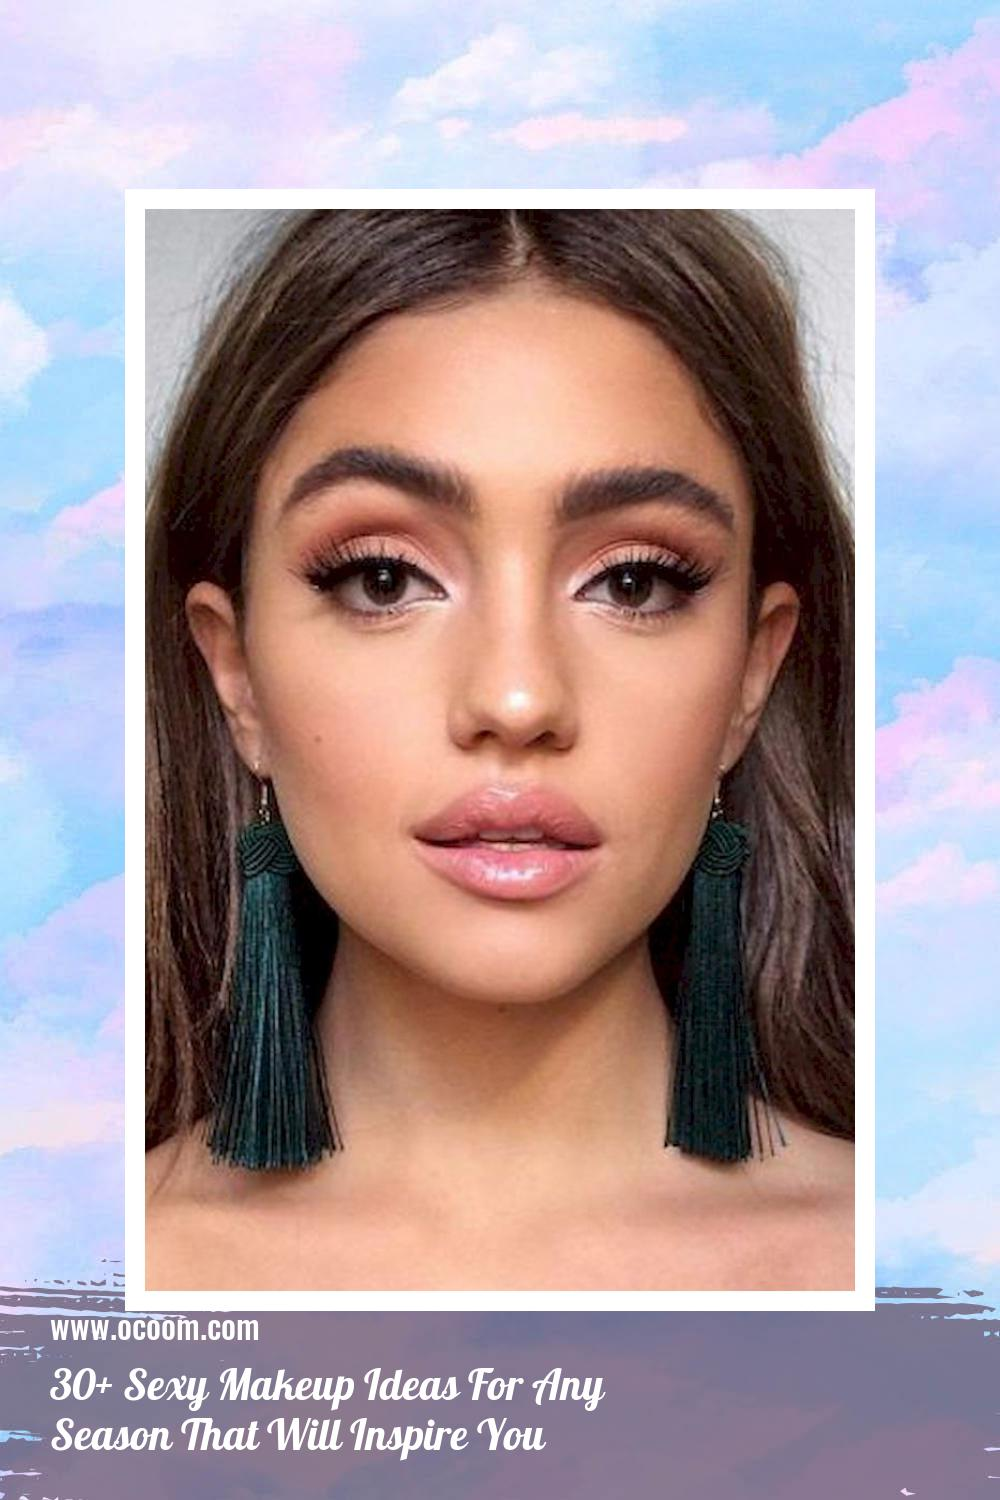 30+ Sexy Makeup Ideas For Any Season That Will Inspire You 19